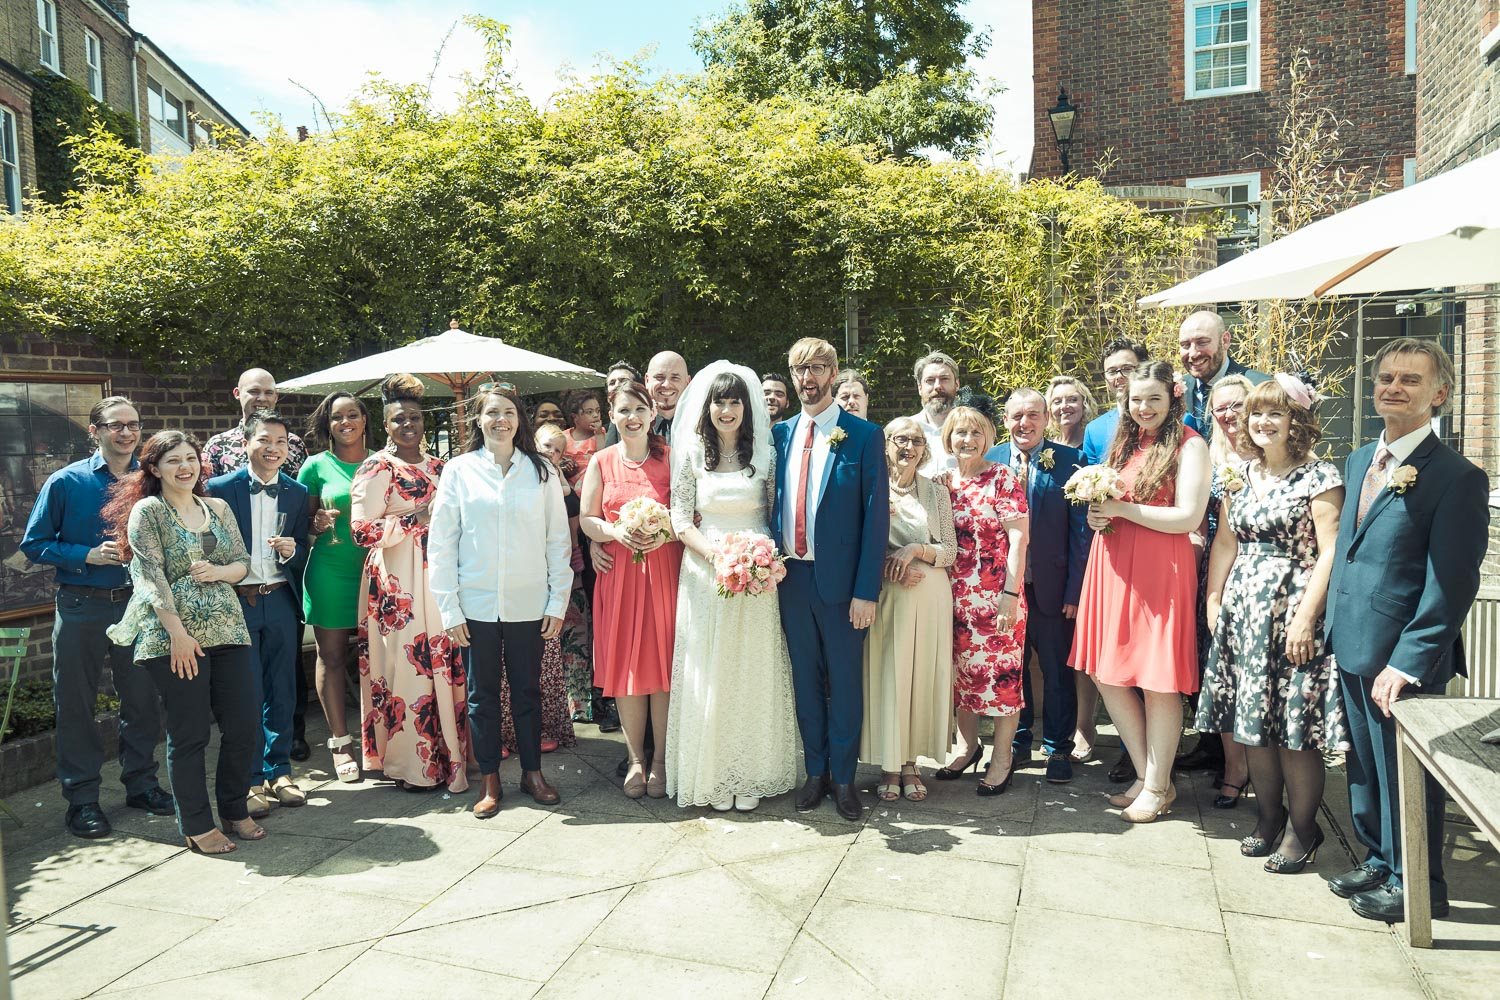 burgh-house-hampstead-north-london-wedding-0108.jpg